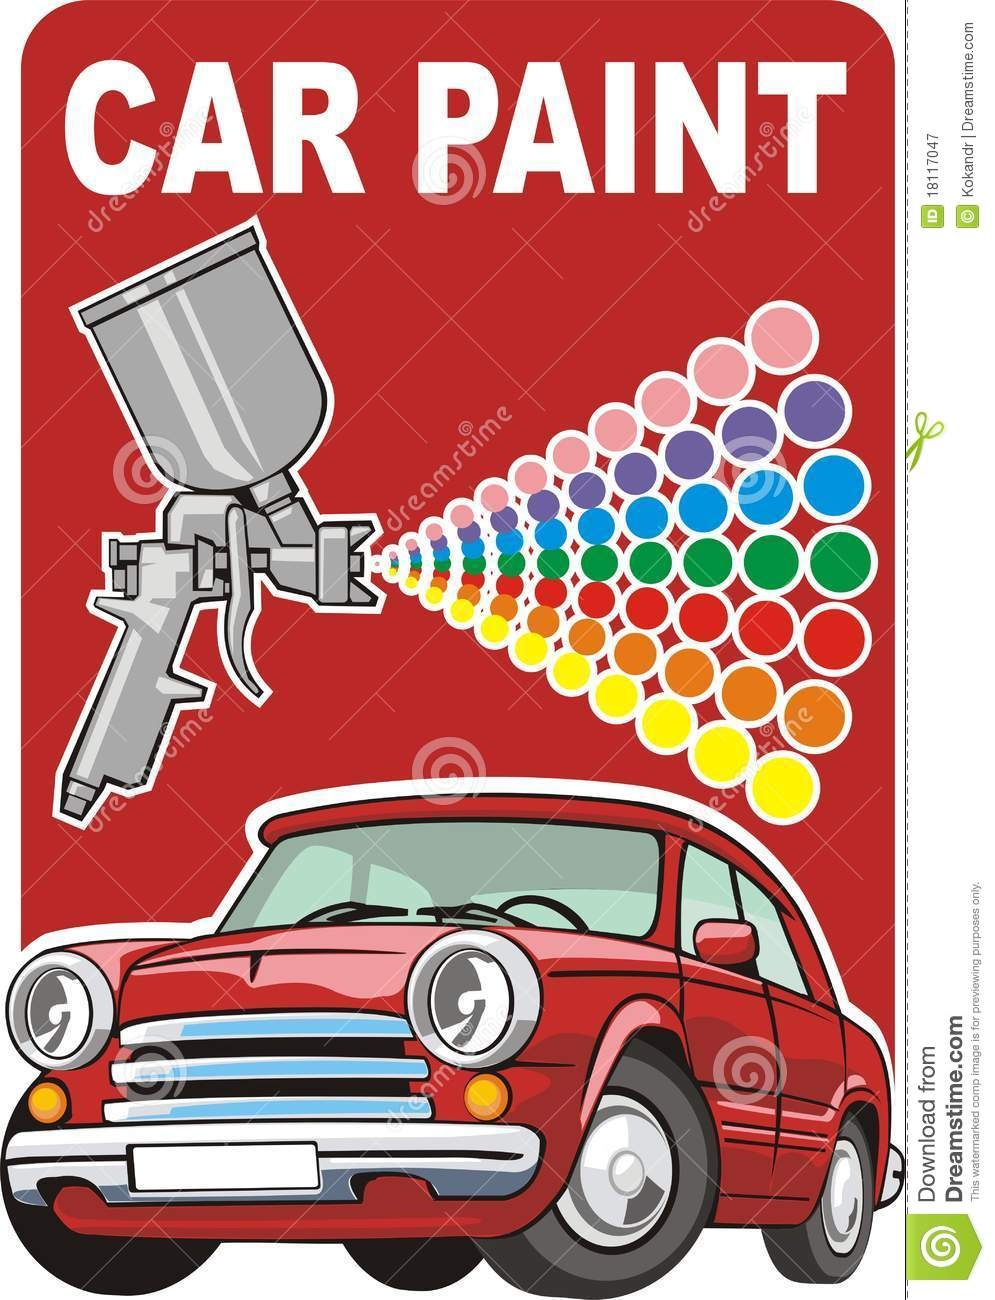 Http Www Dreamstime Com Royalty Free Stock Photography Car Paint Image18117047